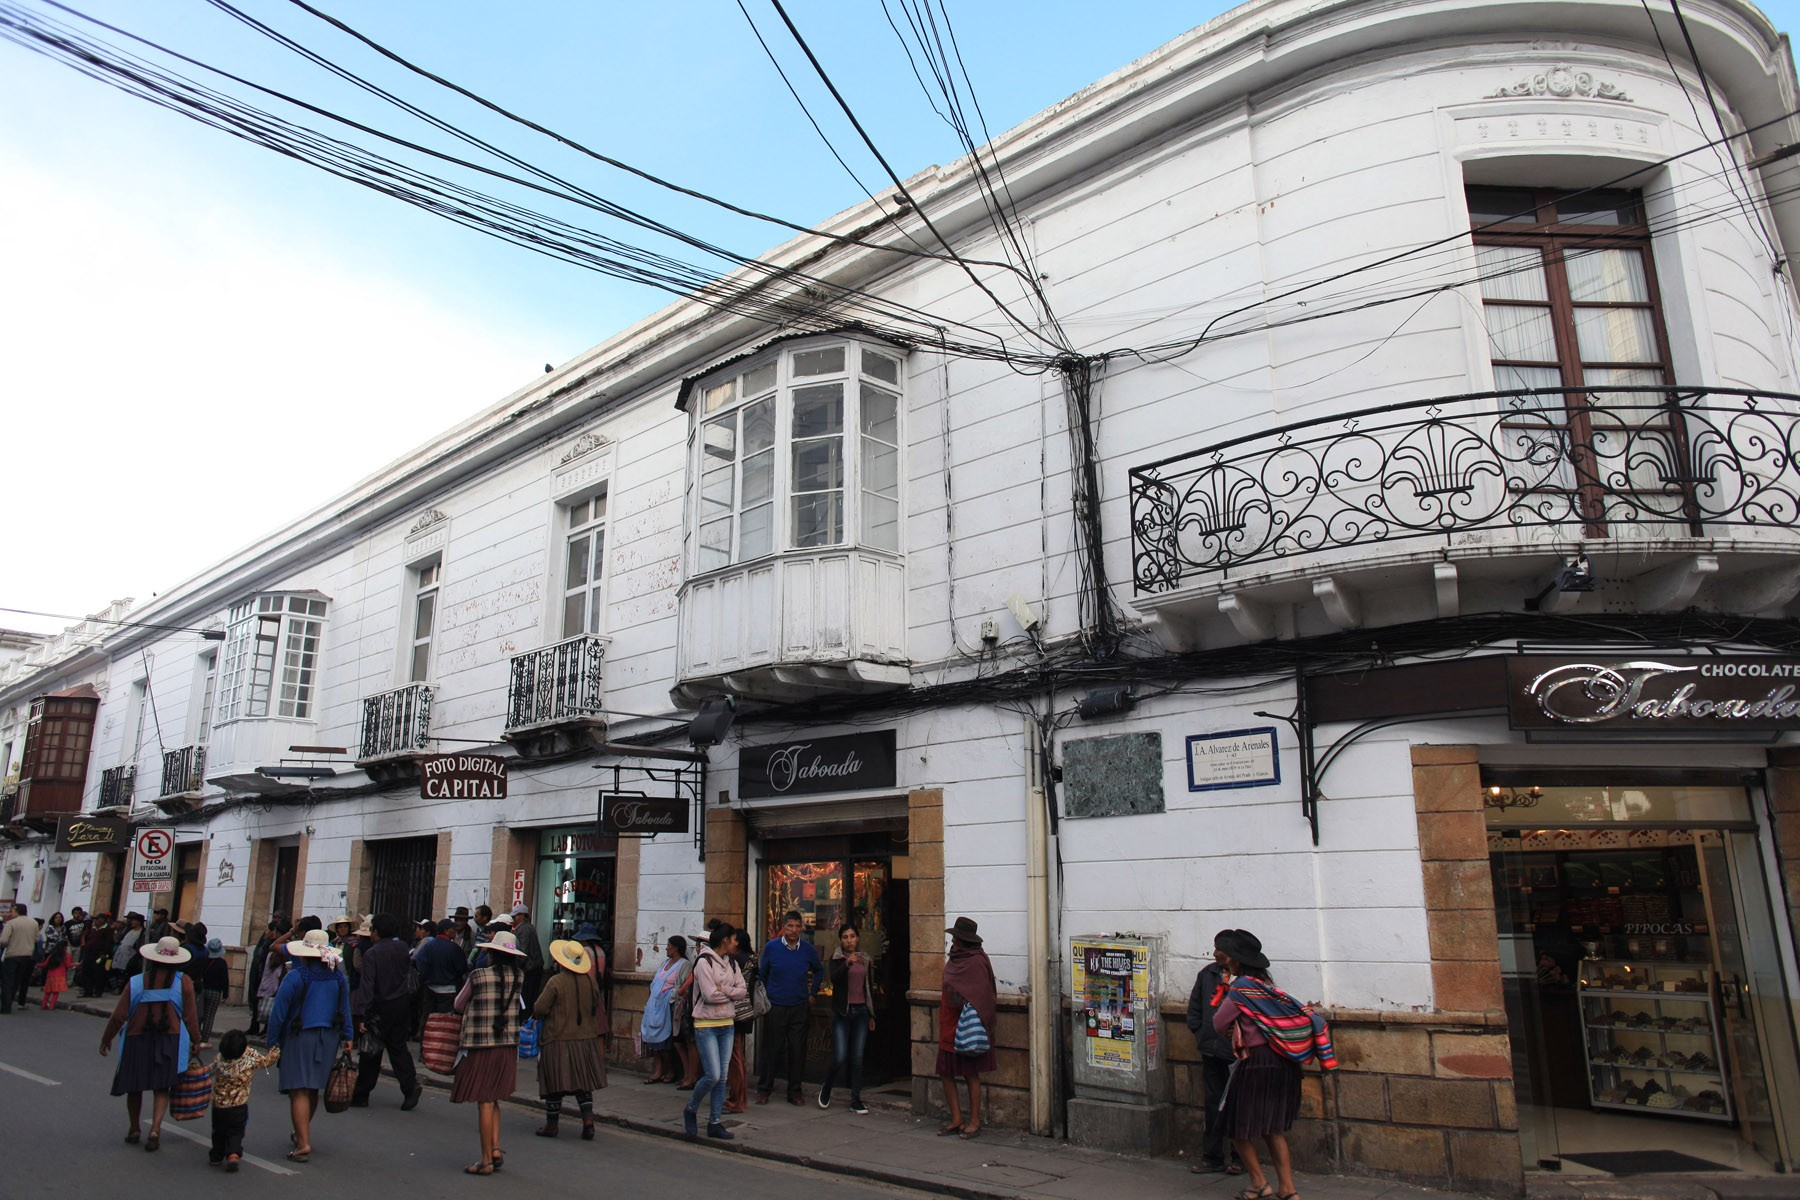 The street corner where Taboada goes head to head with Chocolates Para Ti by Sucre's main plaza